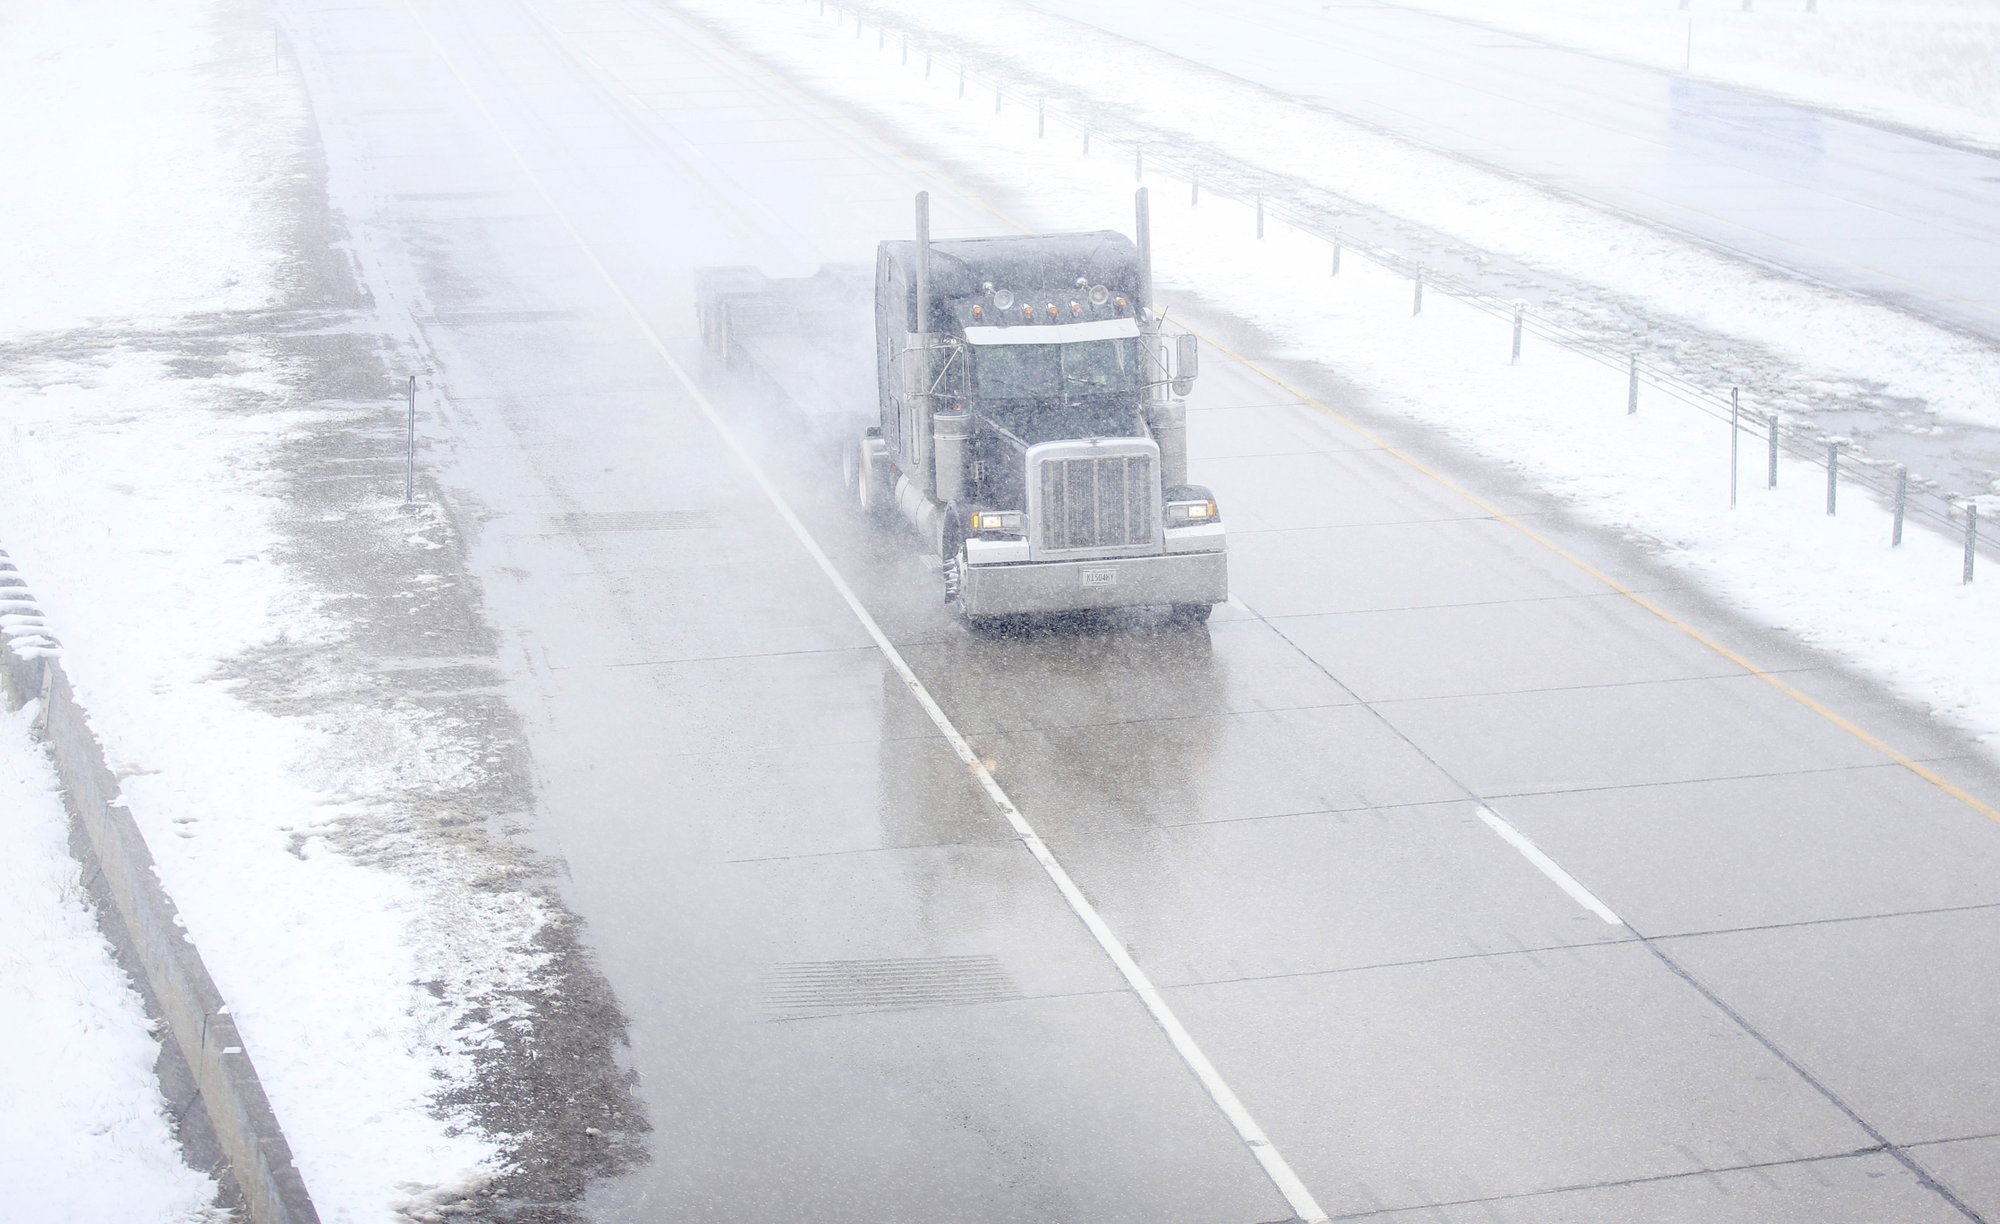 Truck Driving In Blizzard